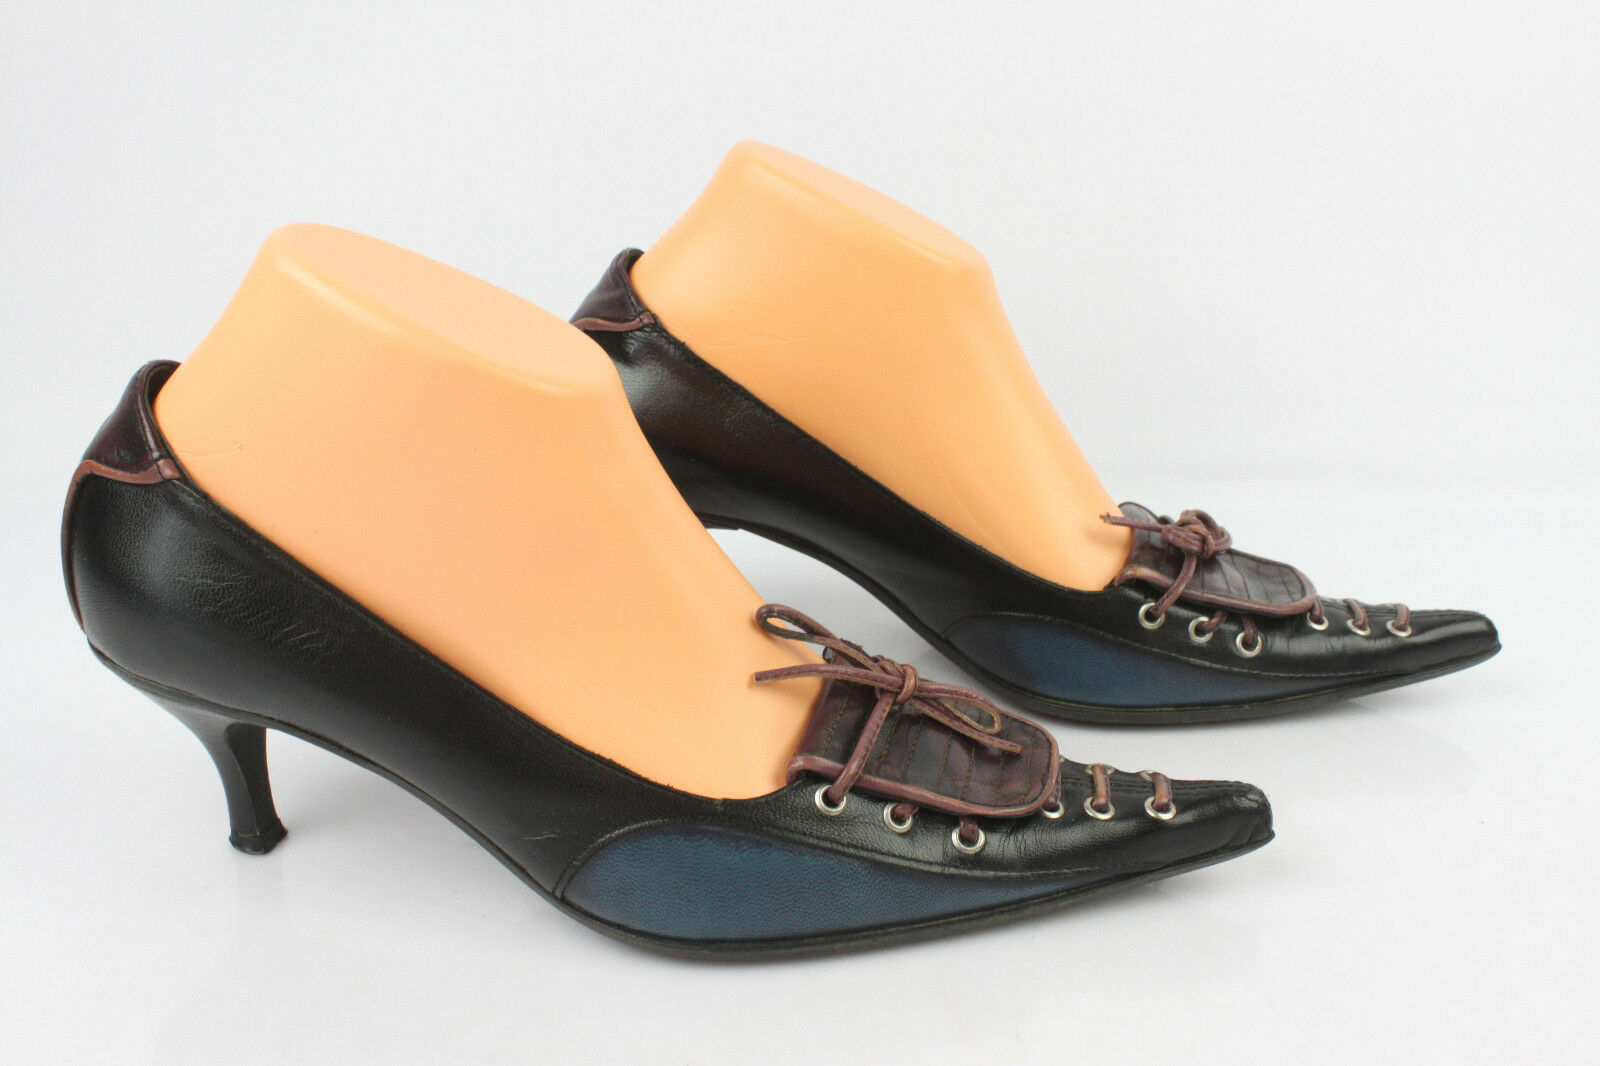 Court shoes SAN MARINA Black Leather bluee and Plum T 38 VERY GOOD CONDITION